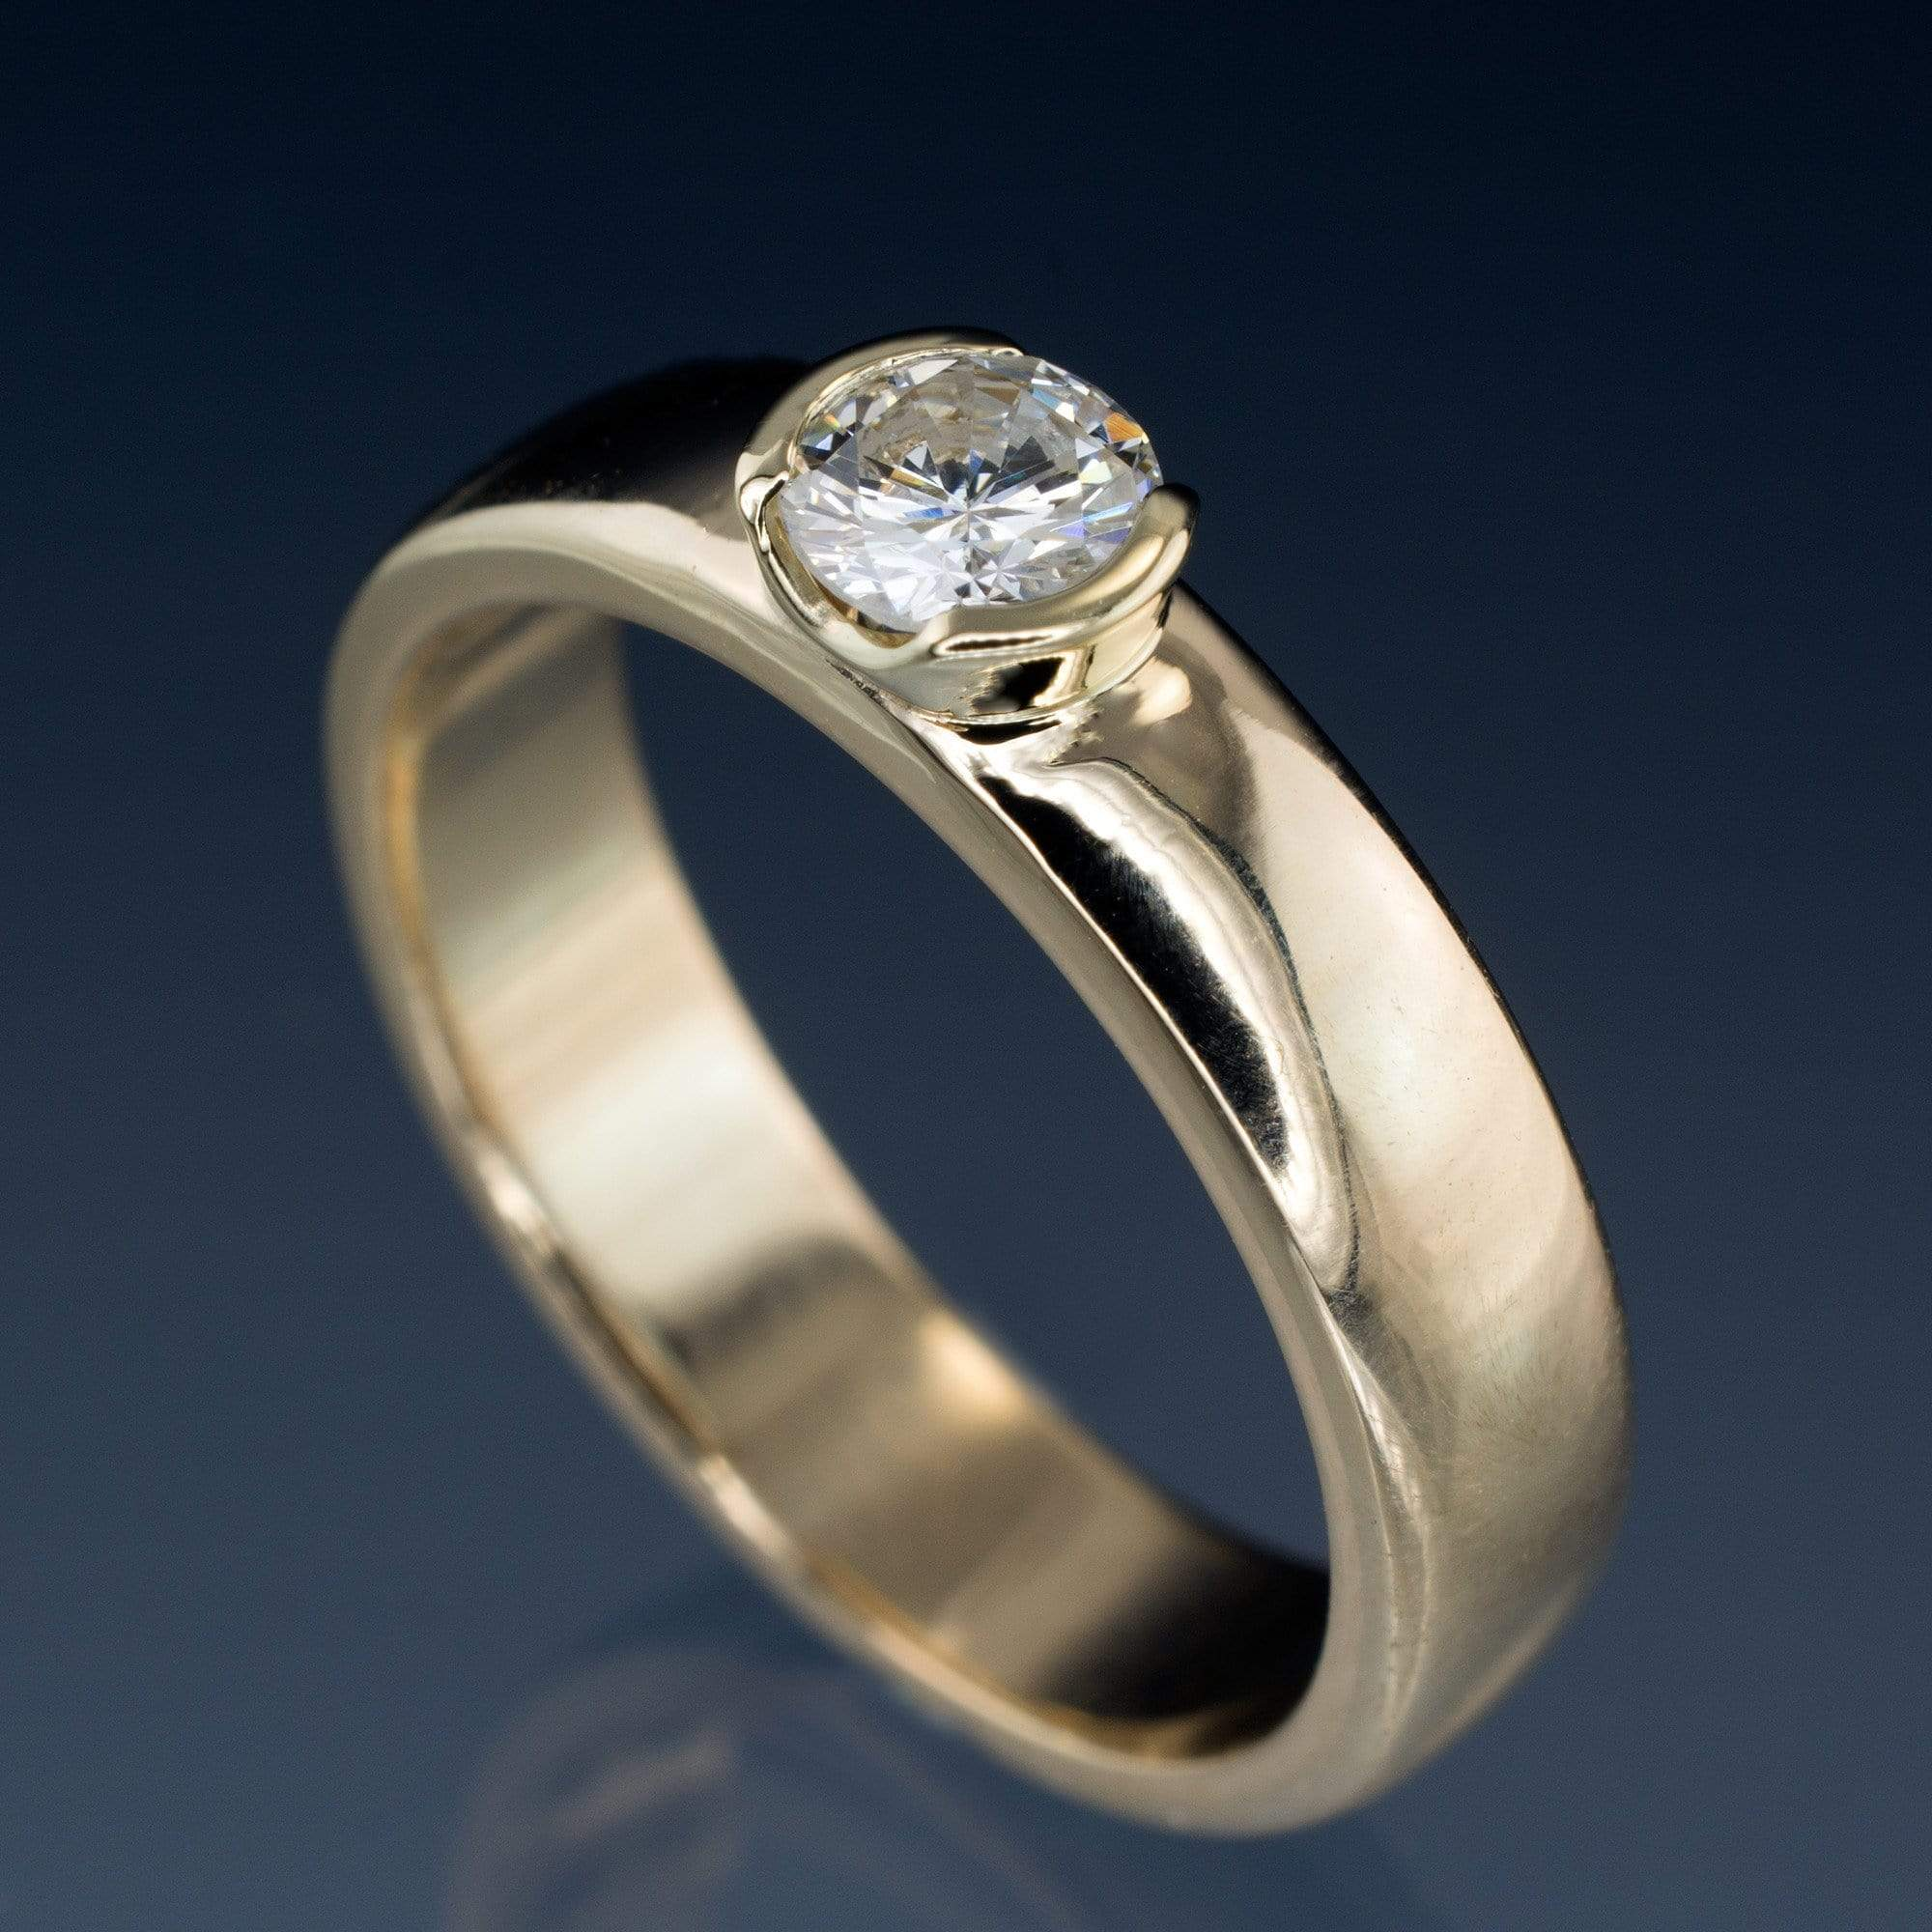 Round Diamond Modern Low Profile Half-Bezel Solitaire Engagement Ring